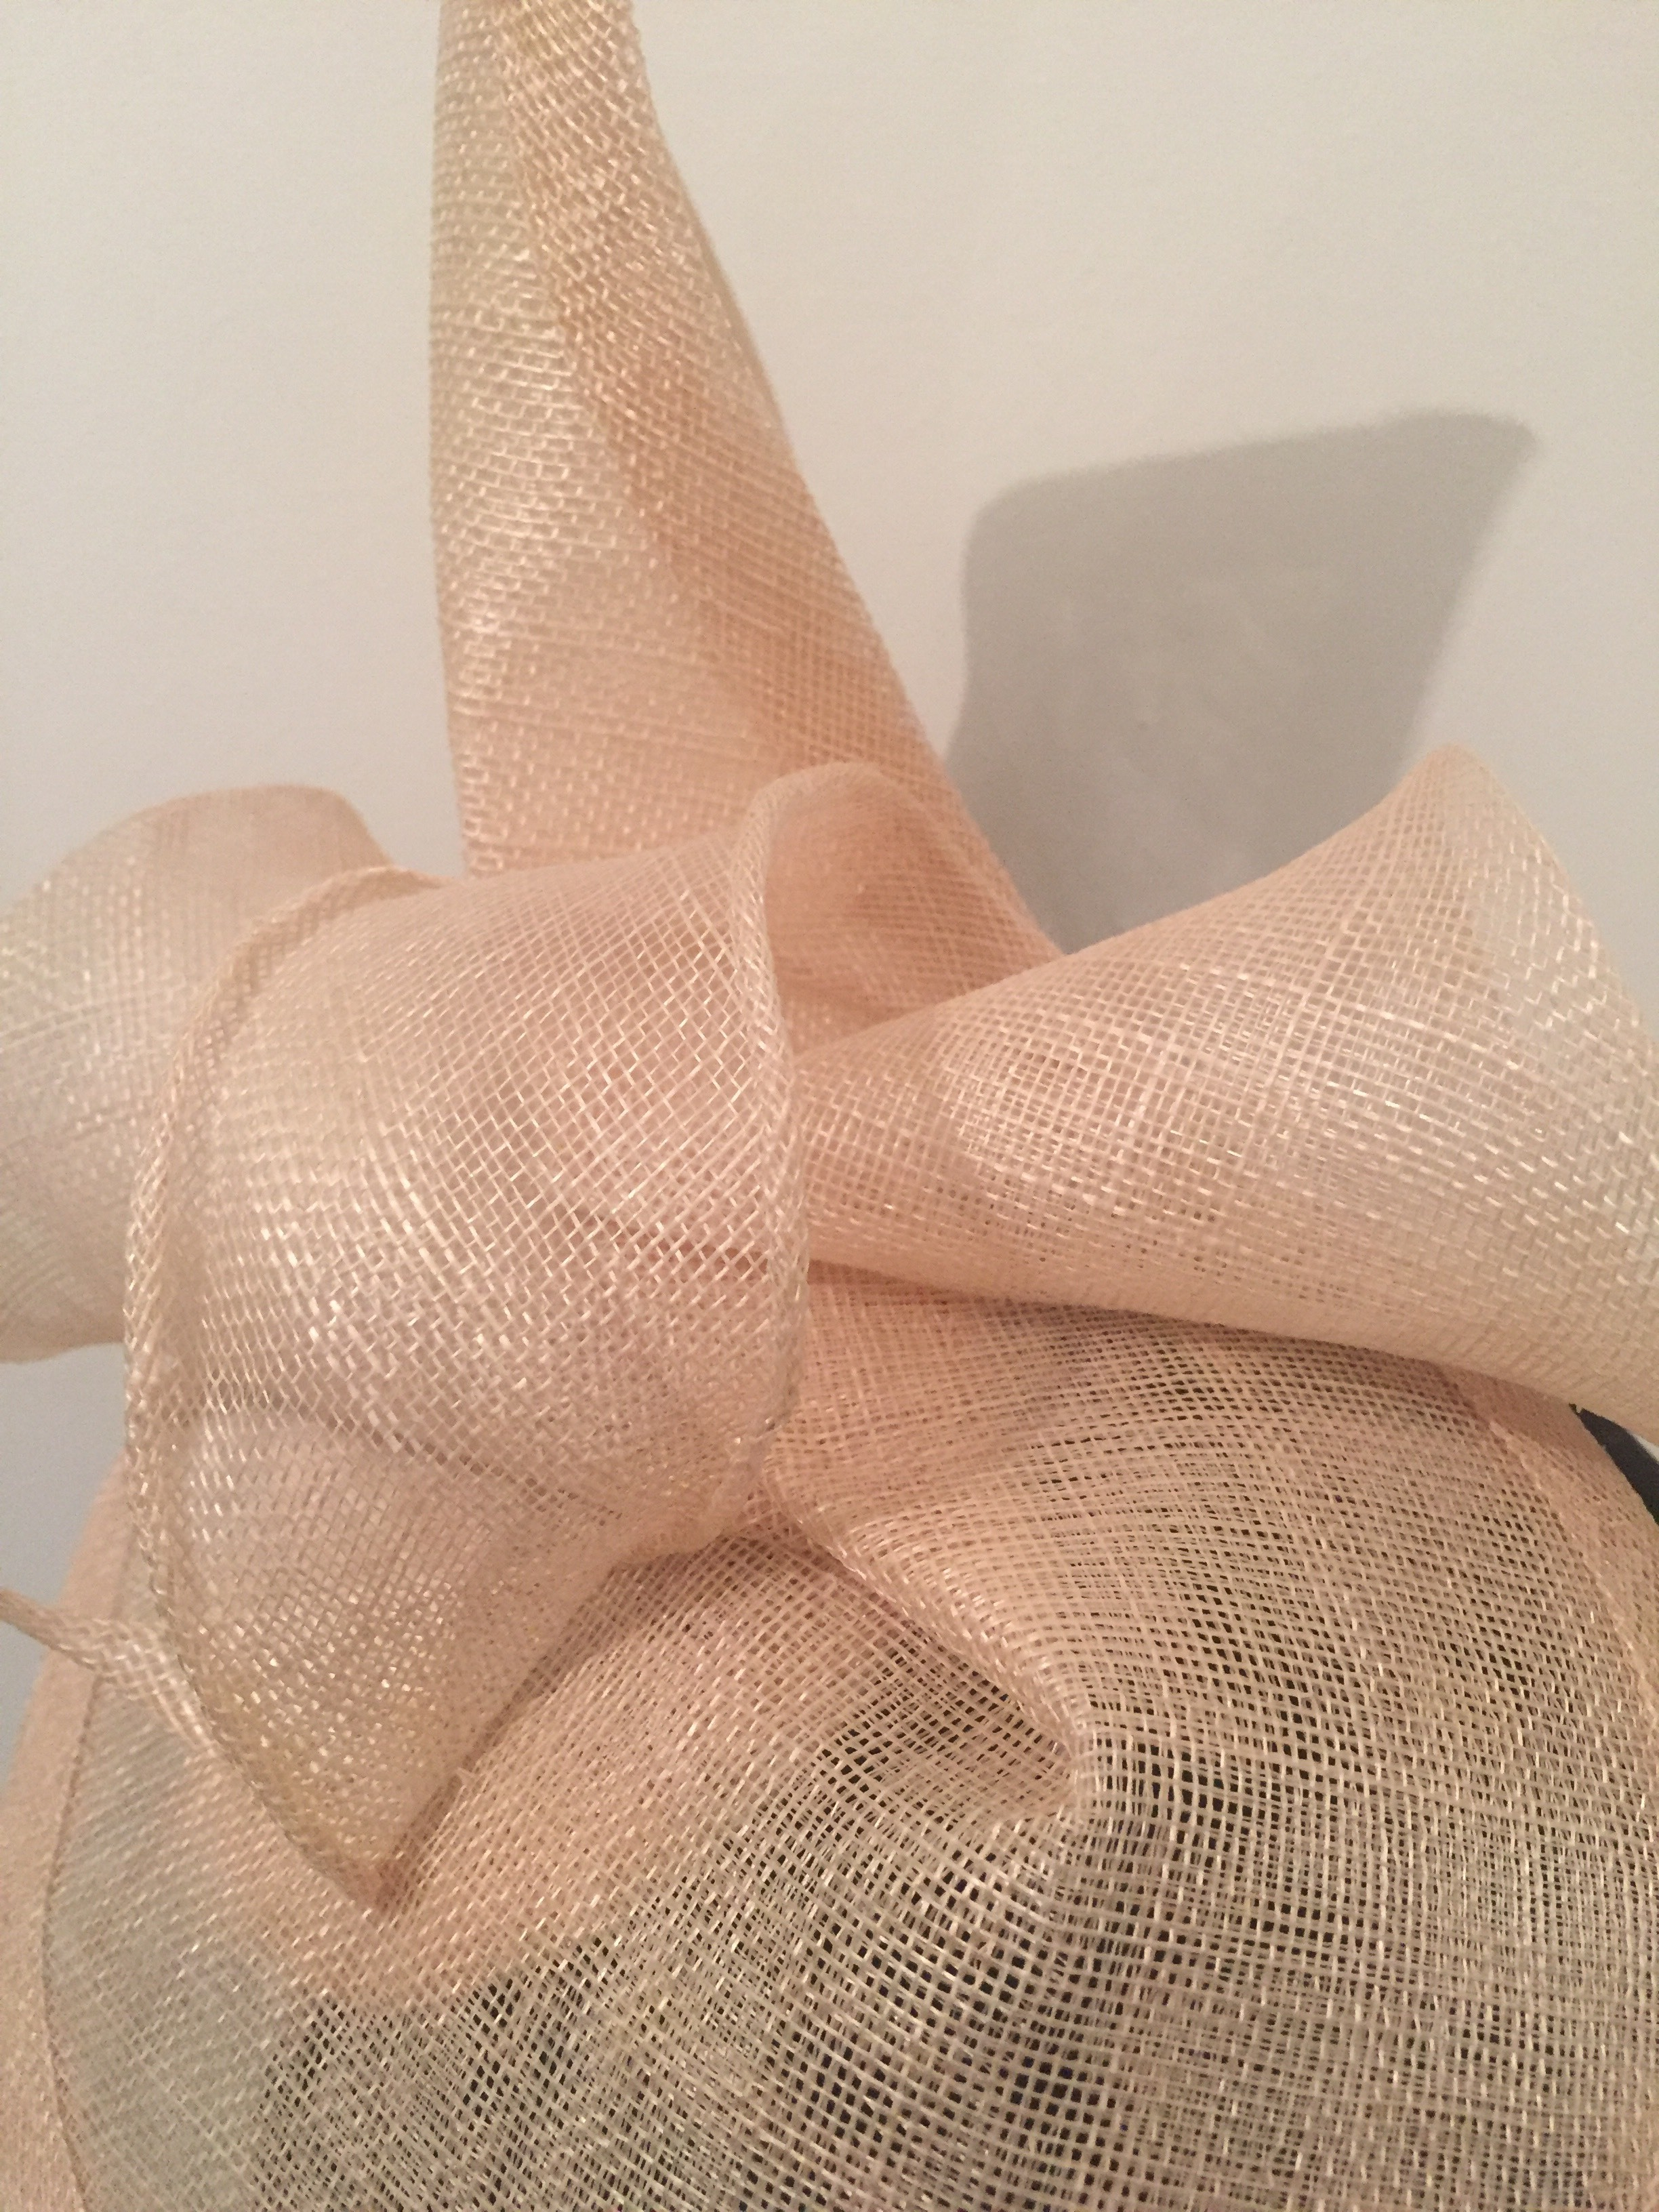 Classes — The Dublin School of Millinery